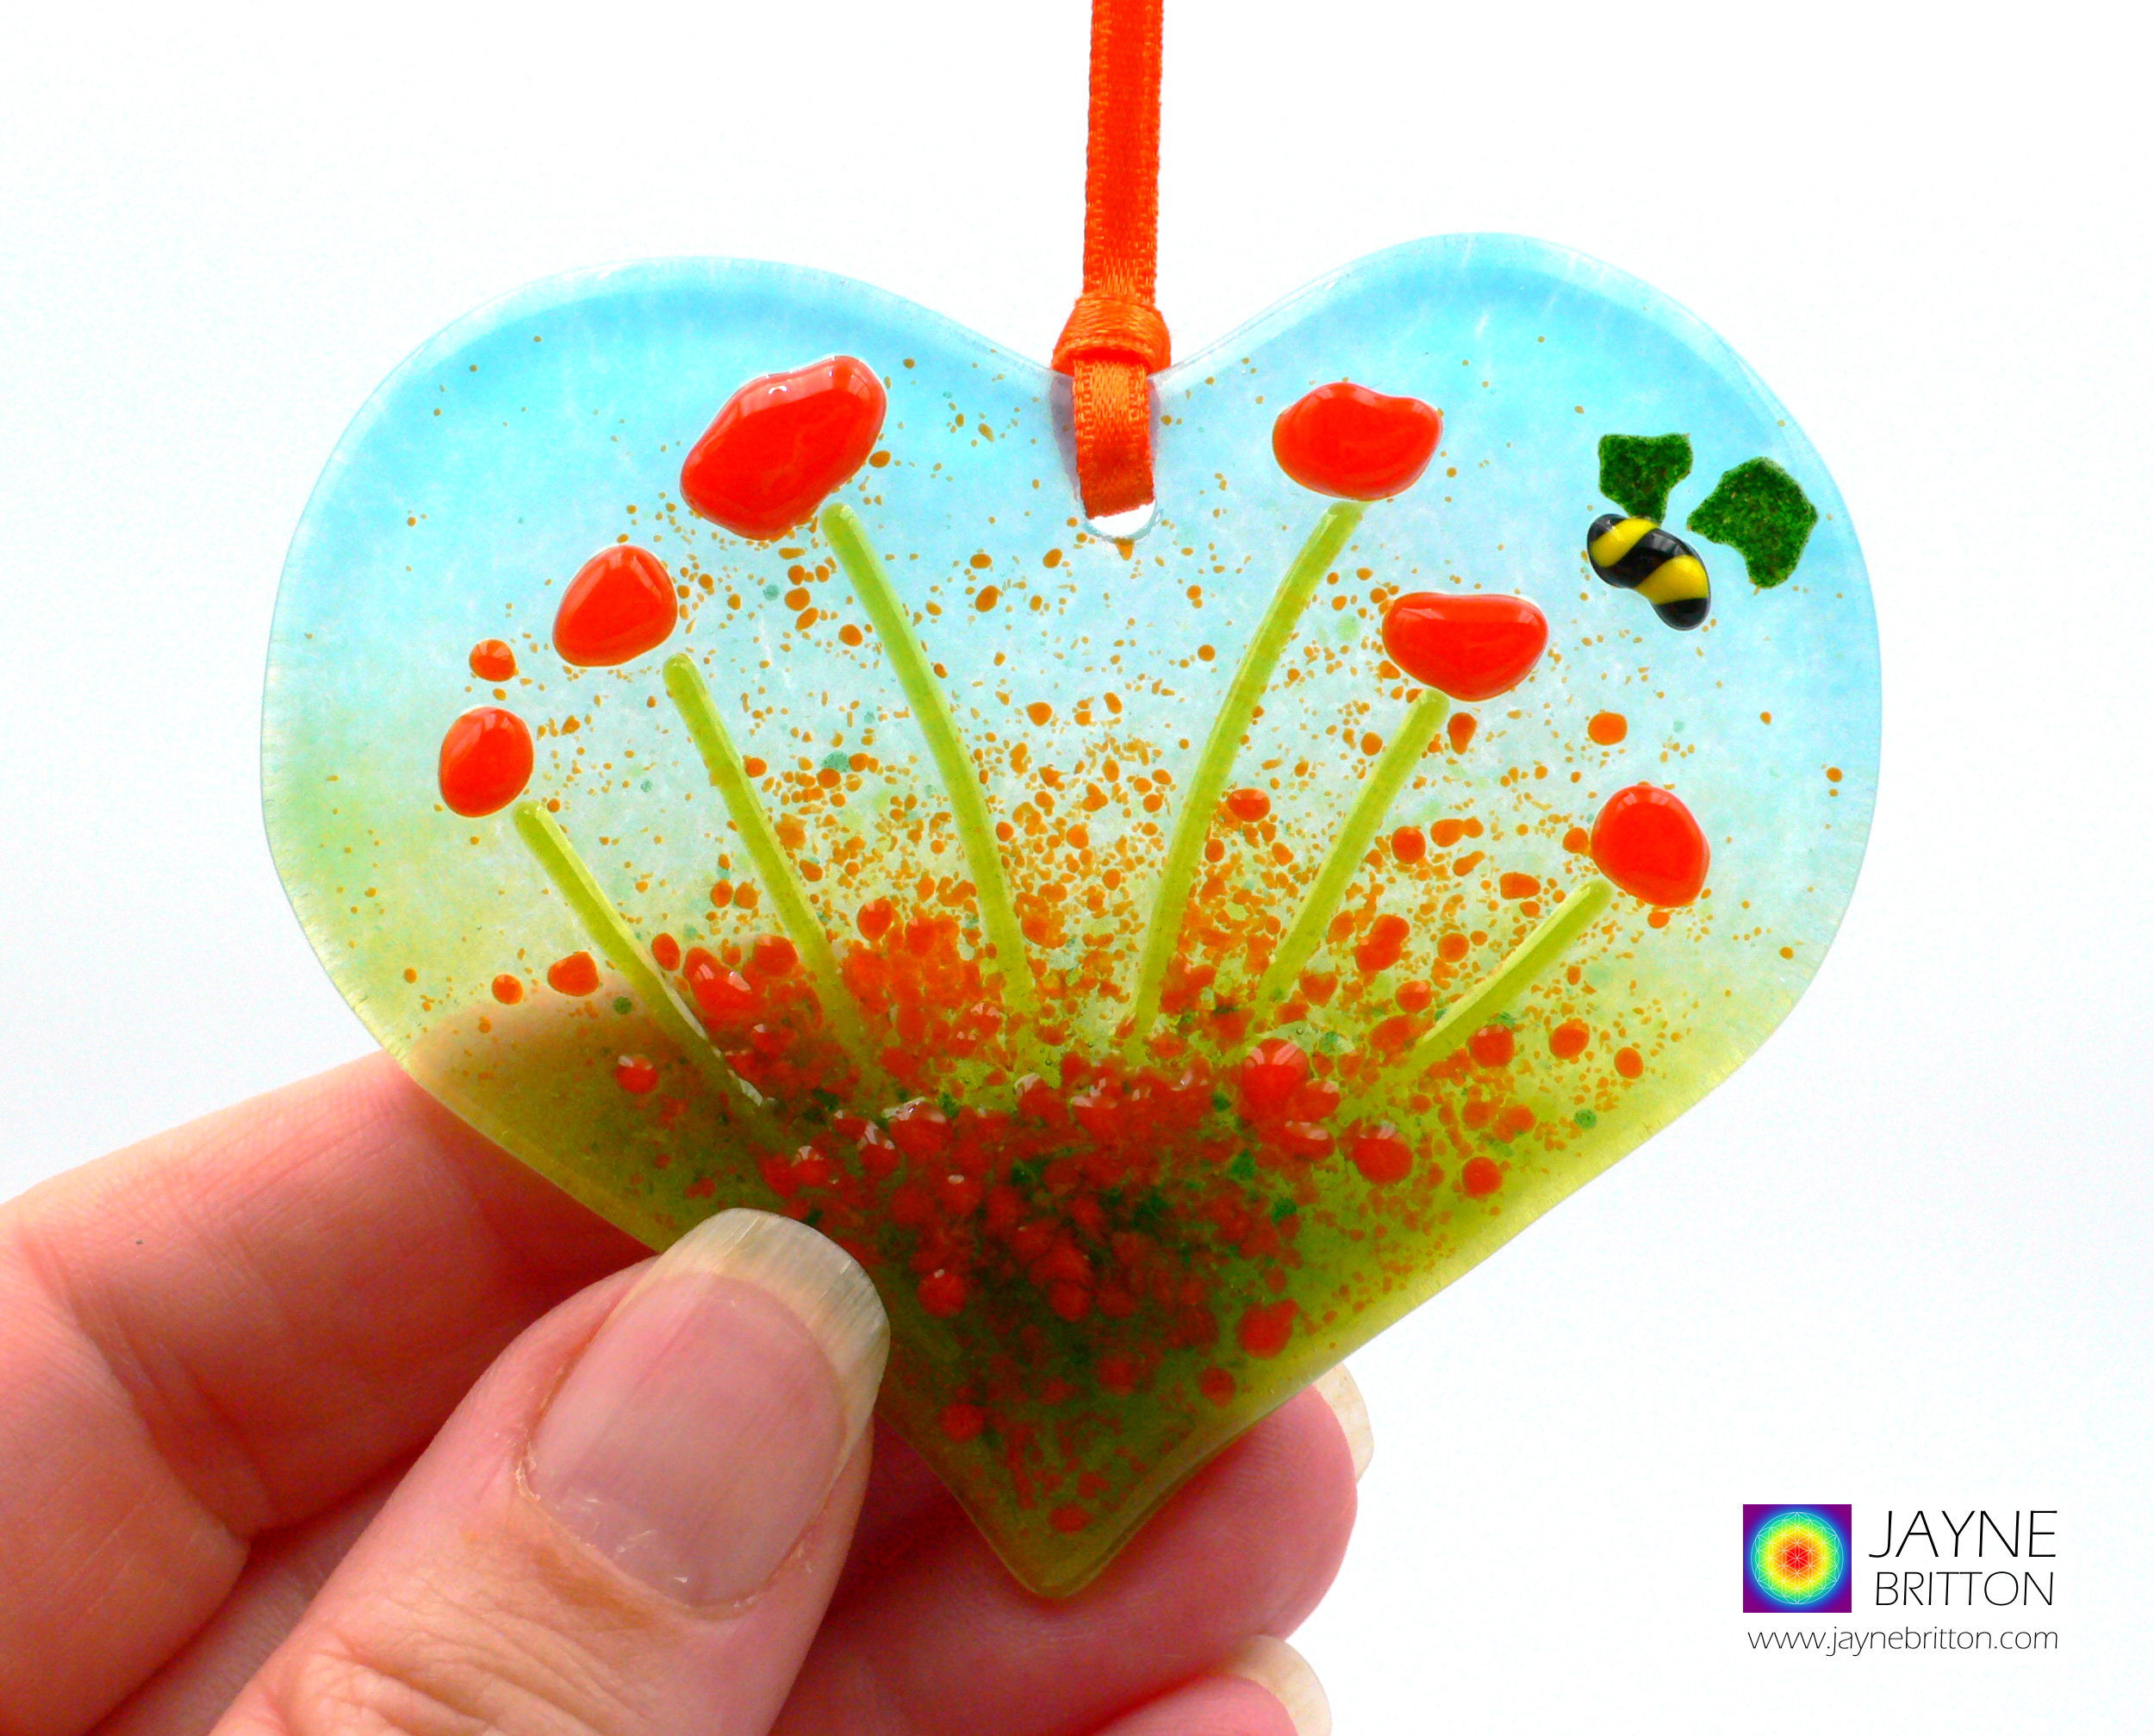 Heart shaped fused glass light catcher, orange flowers with bee